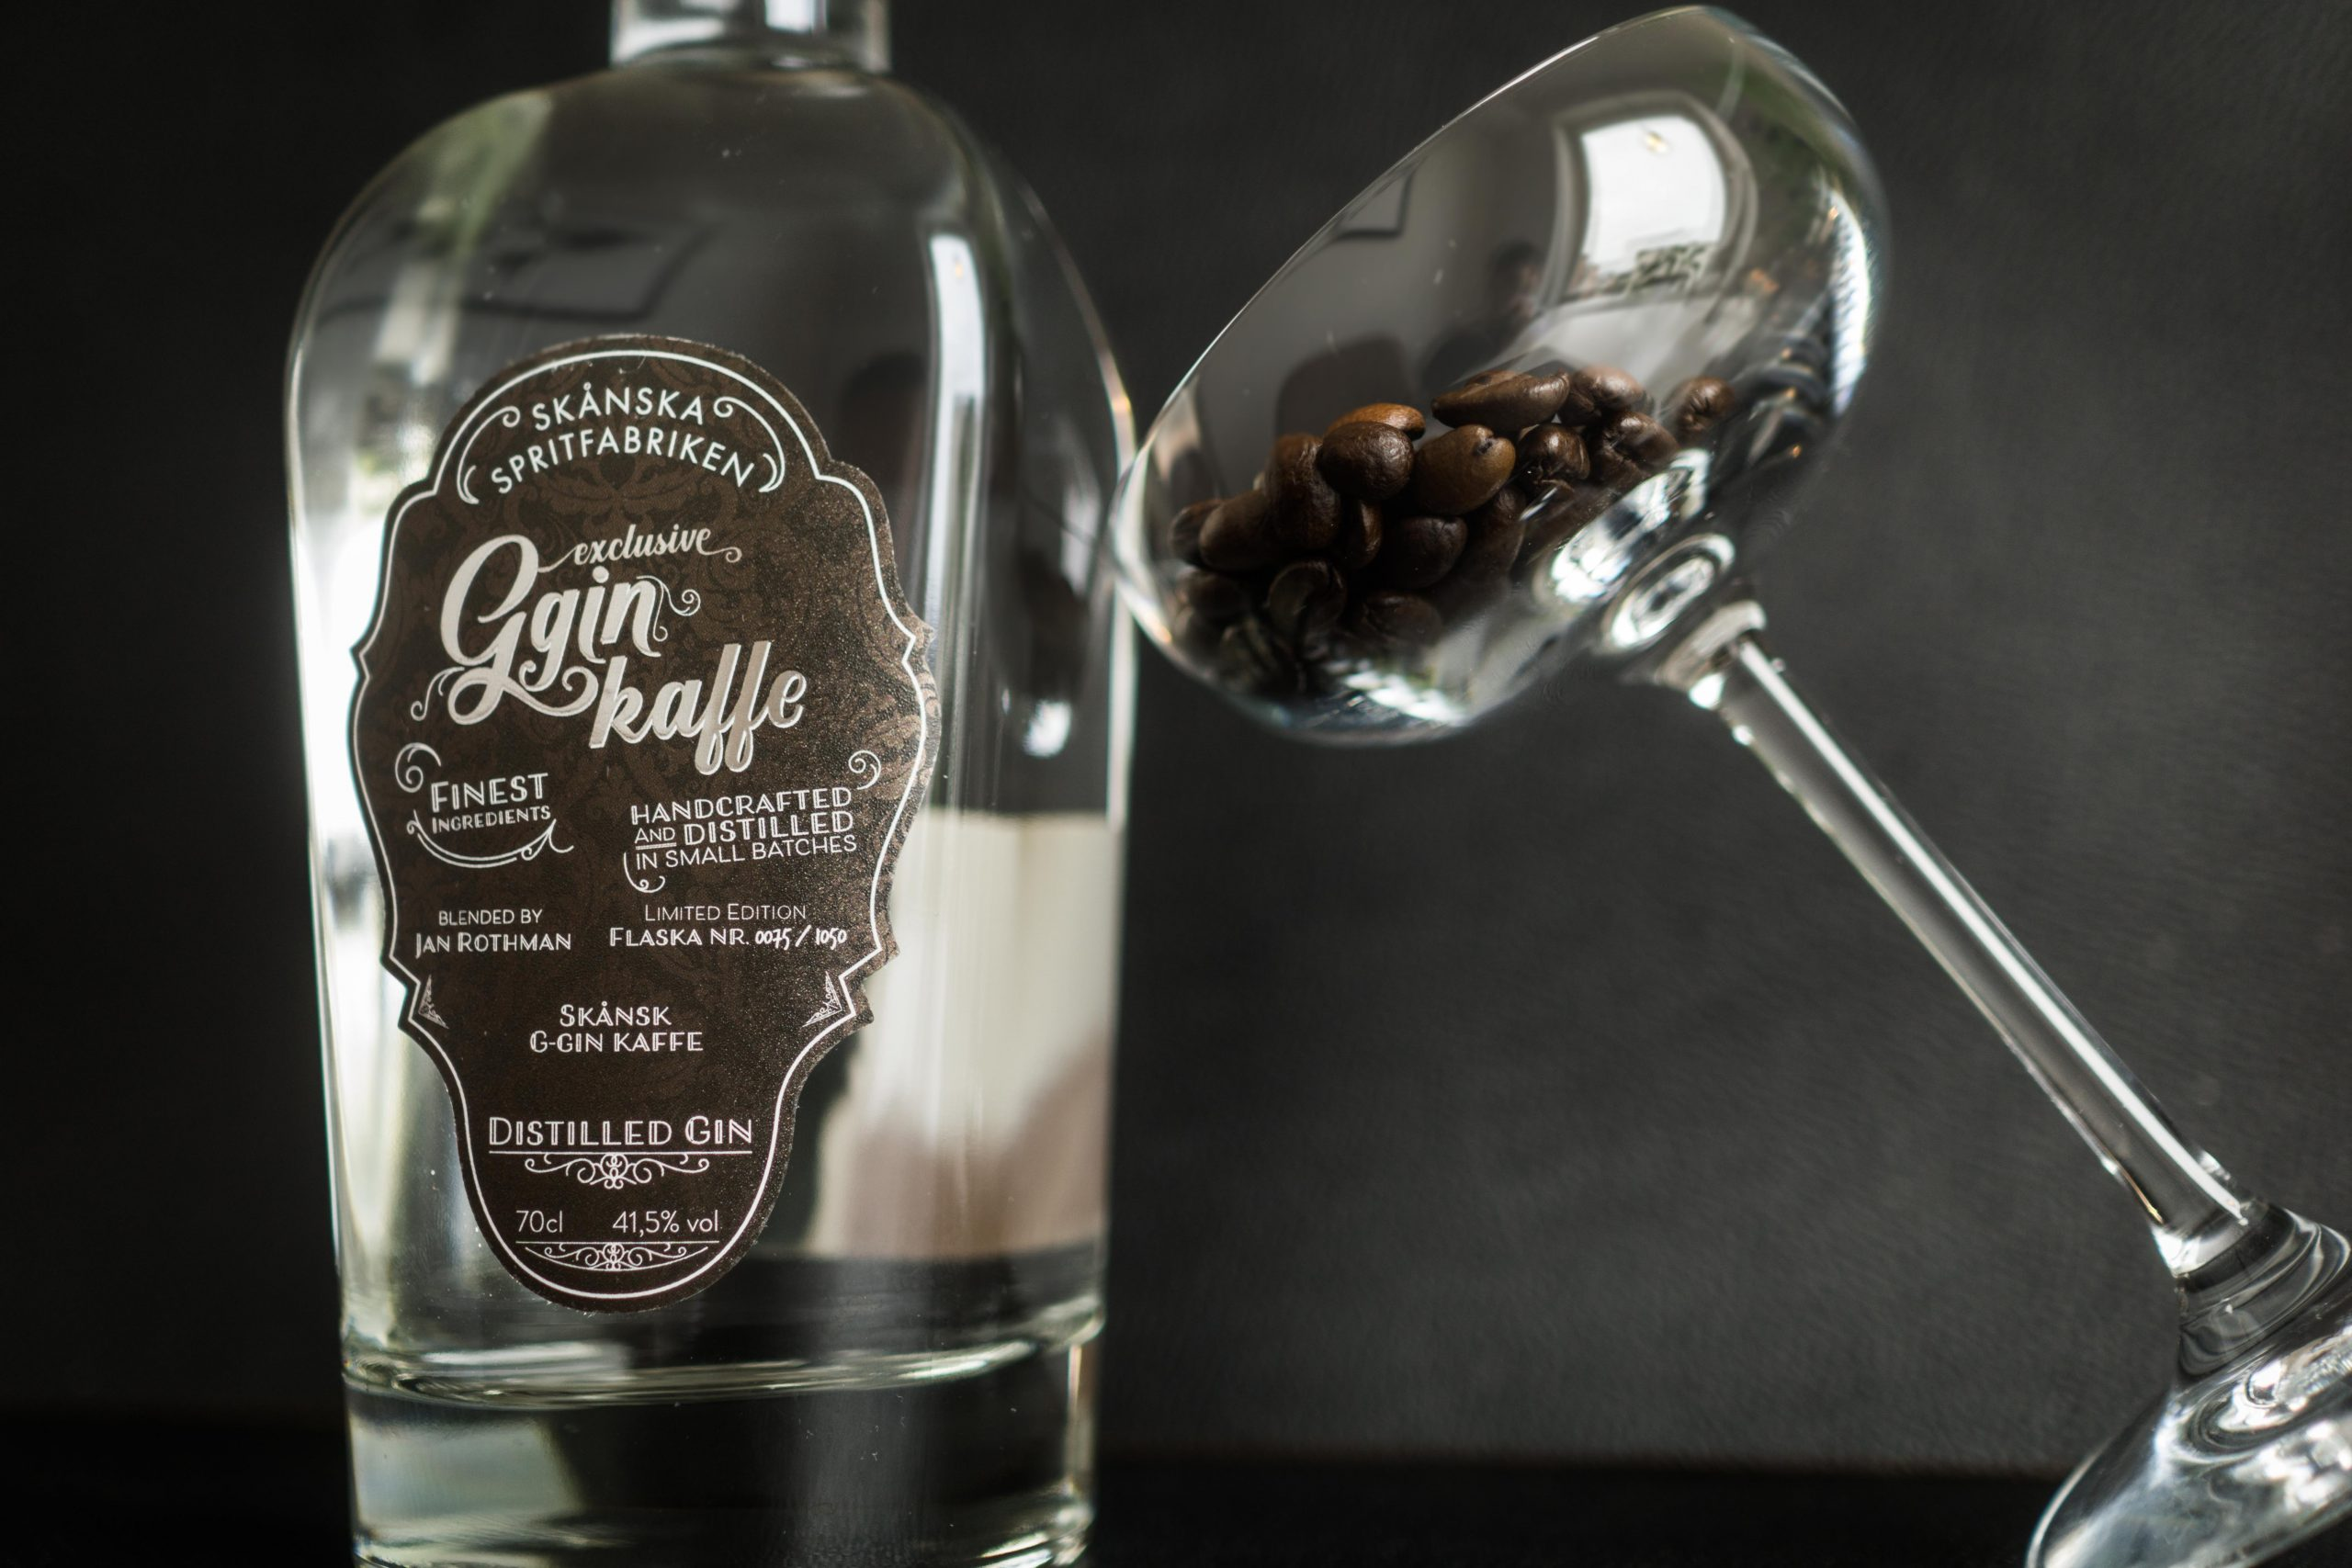 The g-Gin Kaffe from Skånska spritfabriken